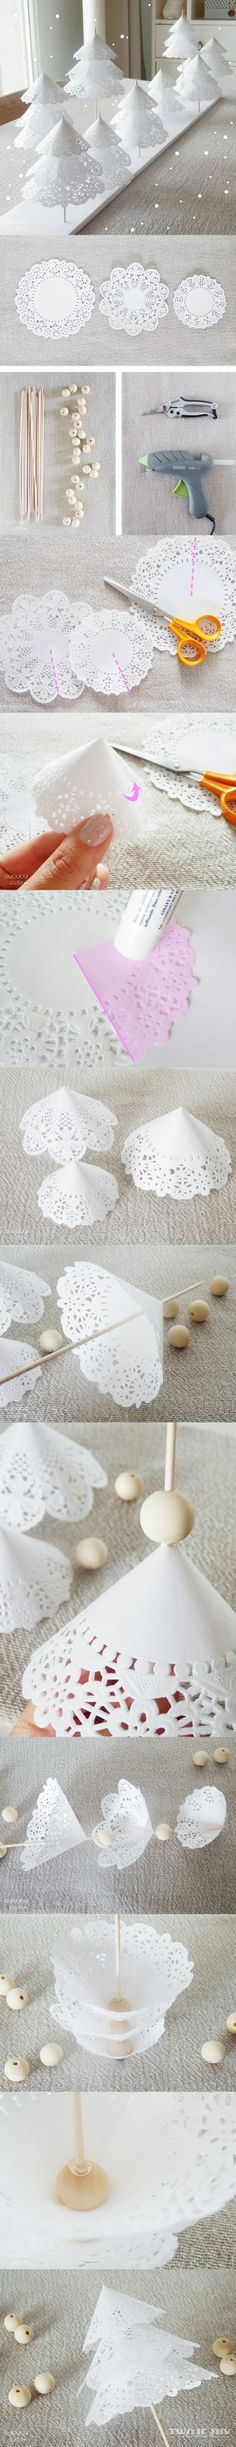 white Christmas trees made with 3 sized paper doilies